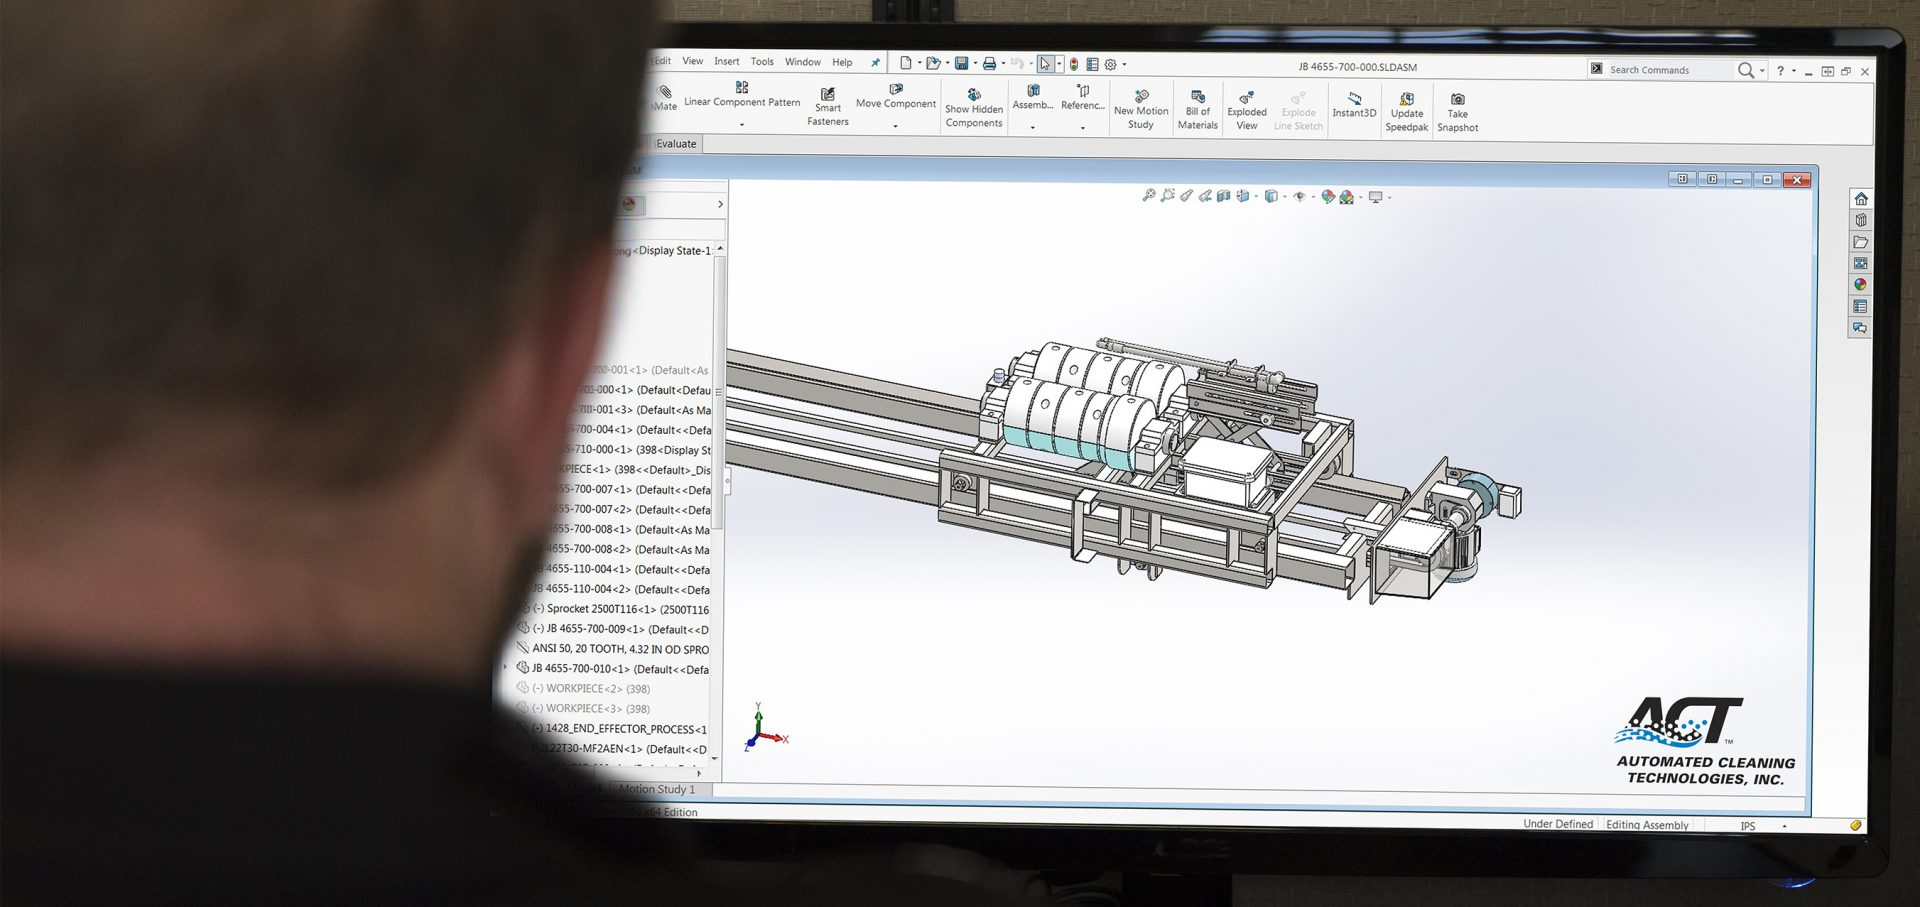 Modern Engineering SolidWorks image